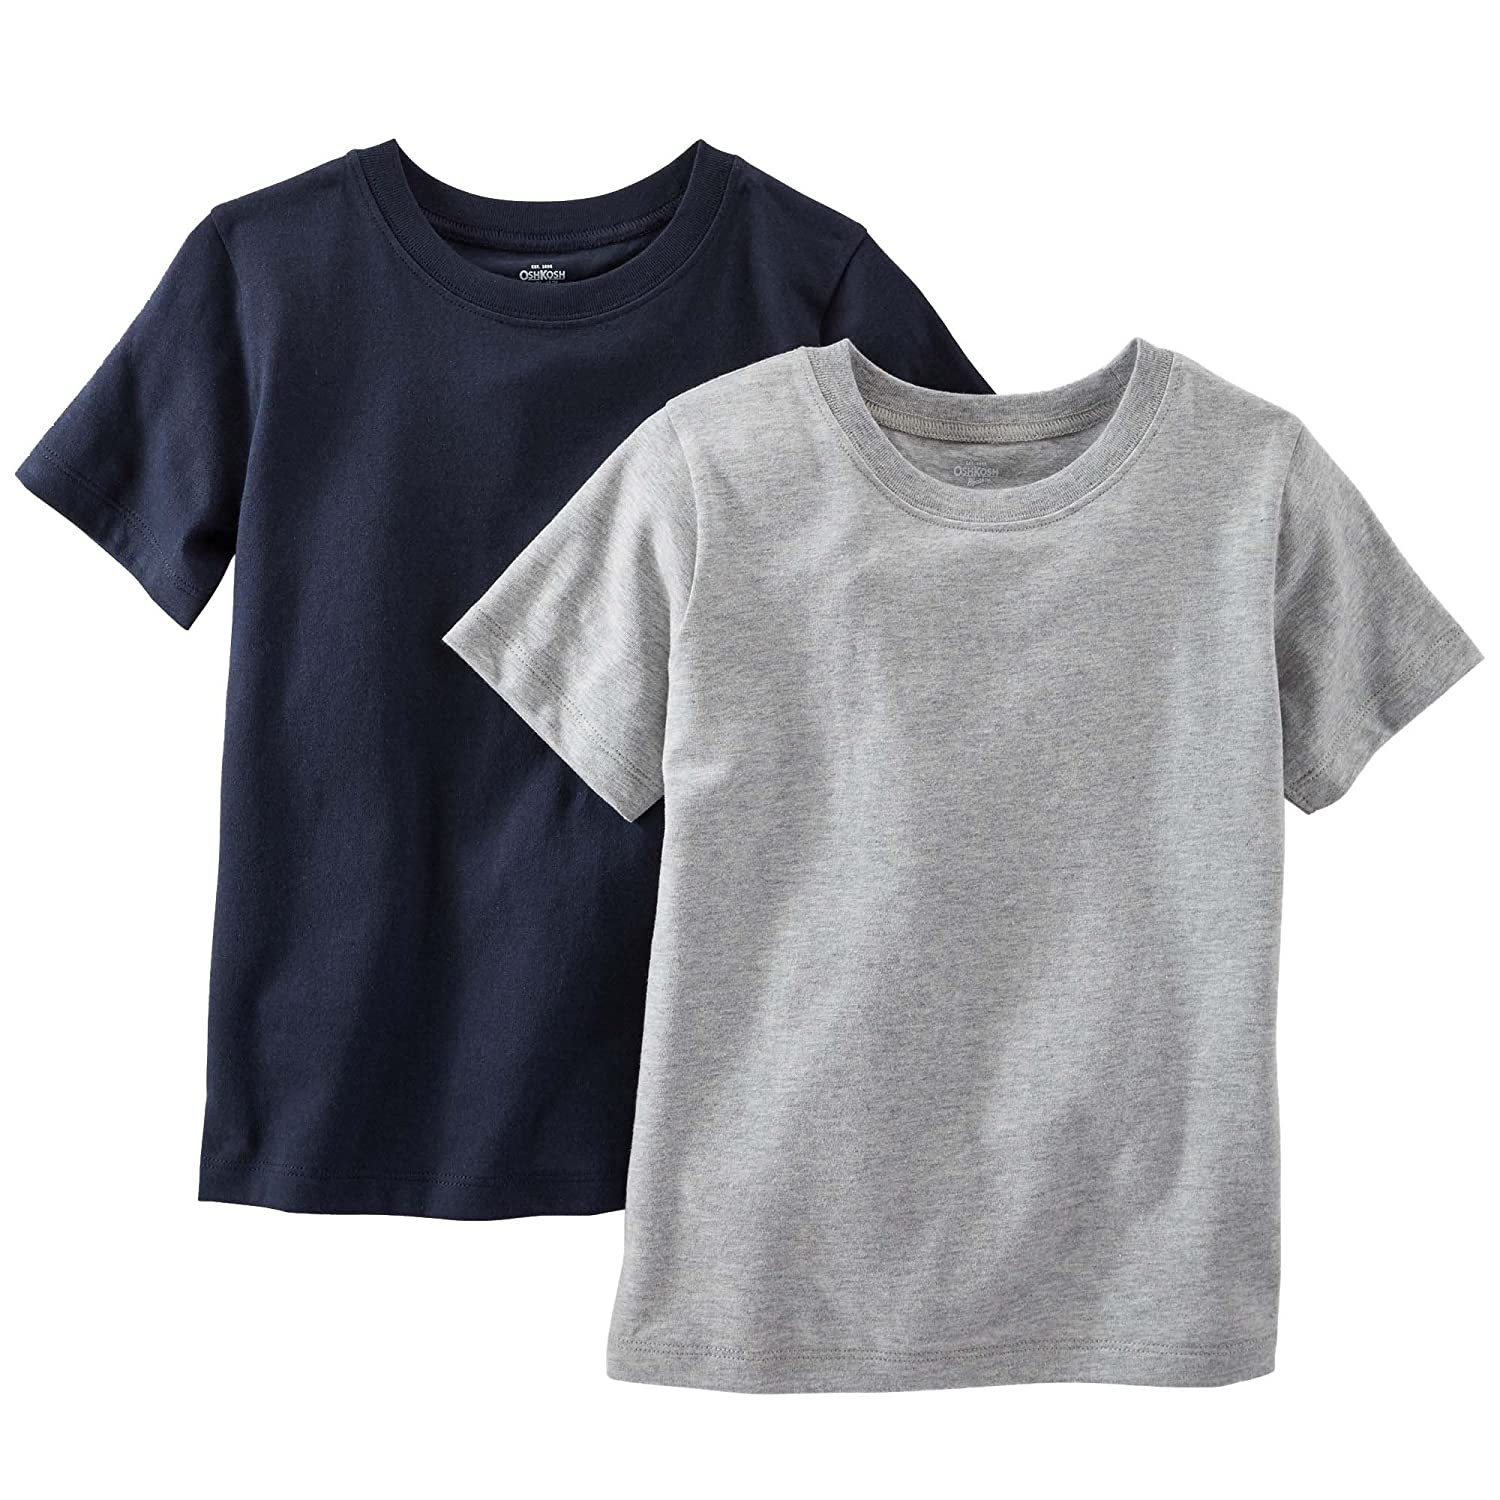 Carter's Boy's 2-Pack Short-Sleeve Cotton Undershirts Tee Set